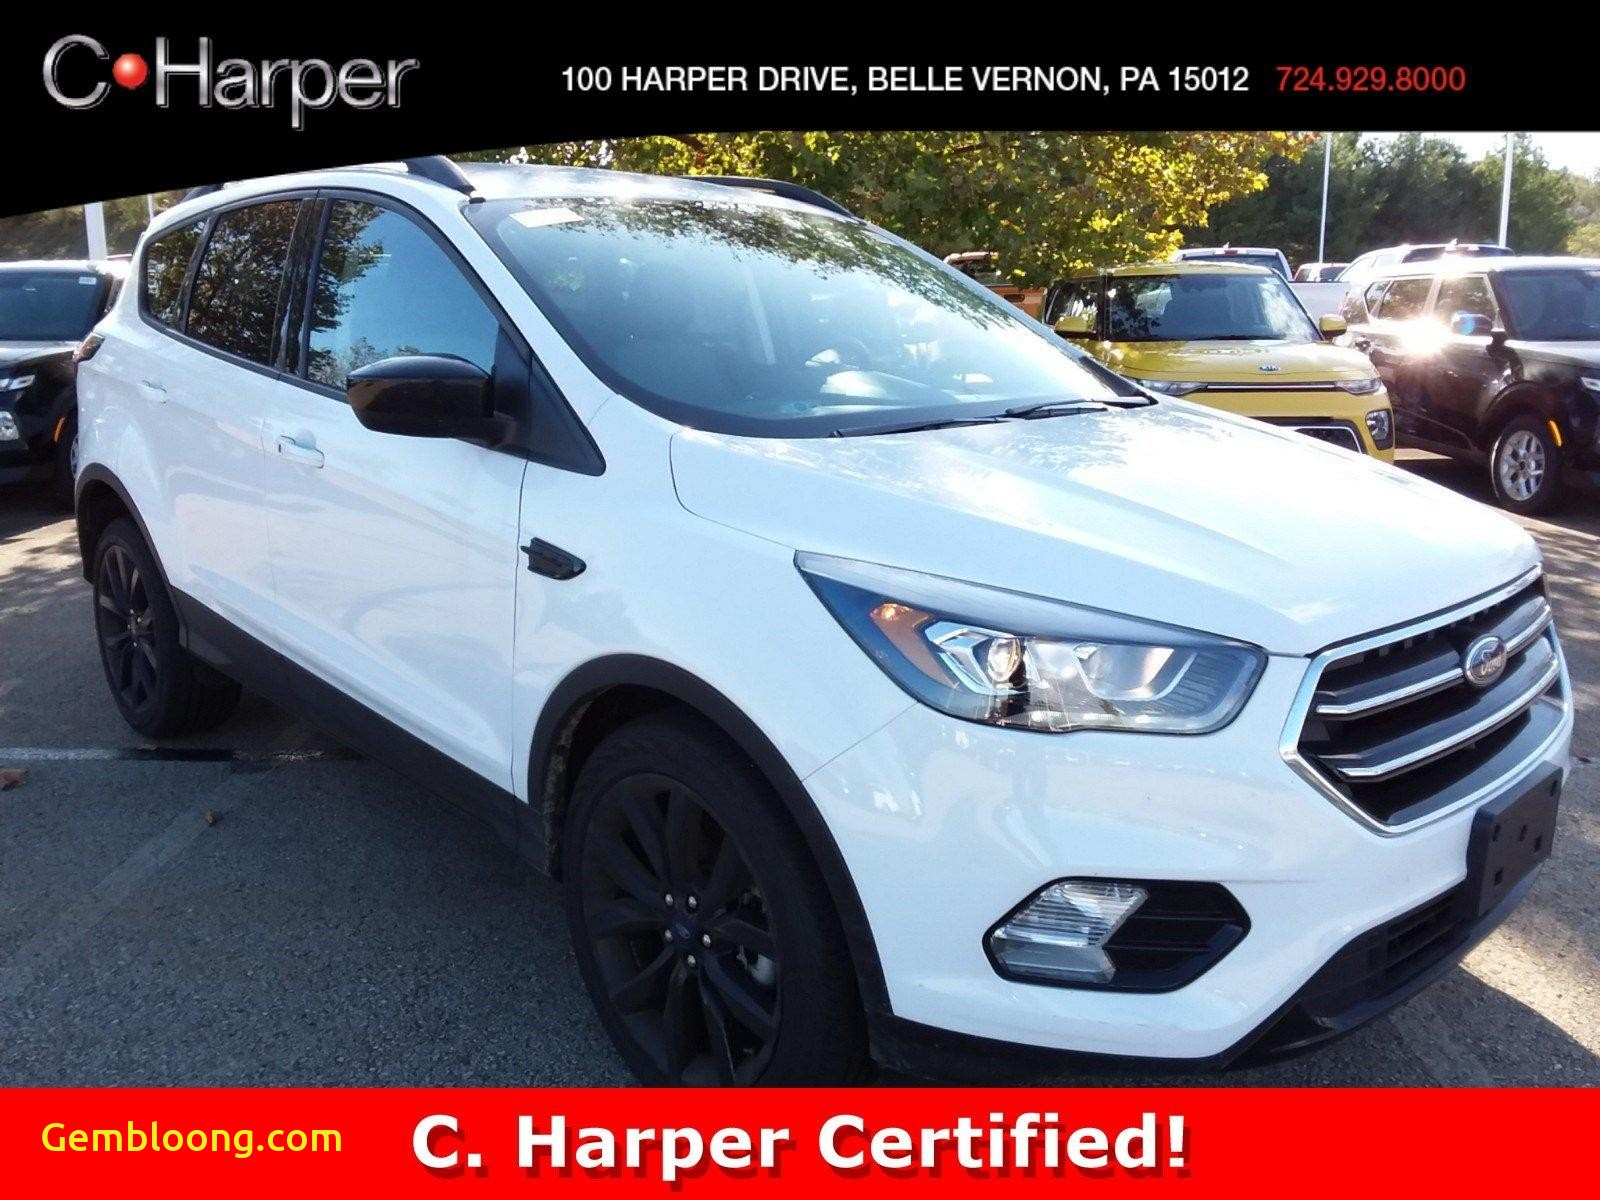 Used Suv for Sale Luxury 2019 White ford Escape Used Suv for Sale In Belle Vernon